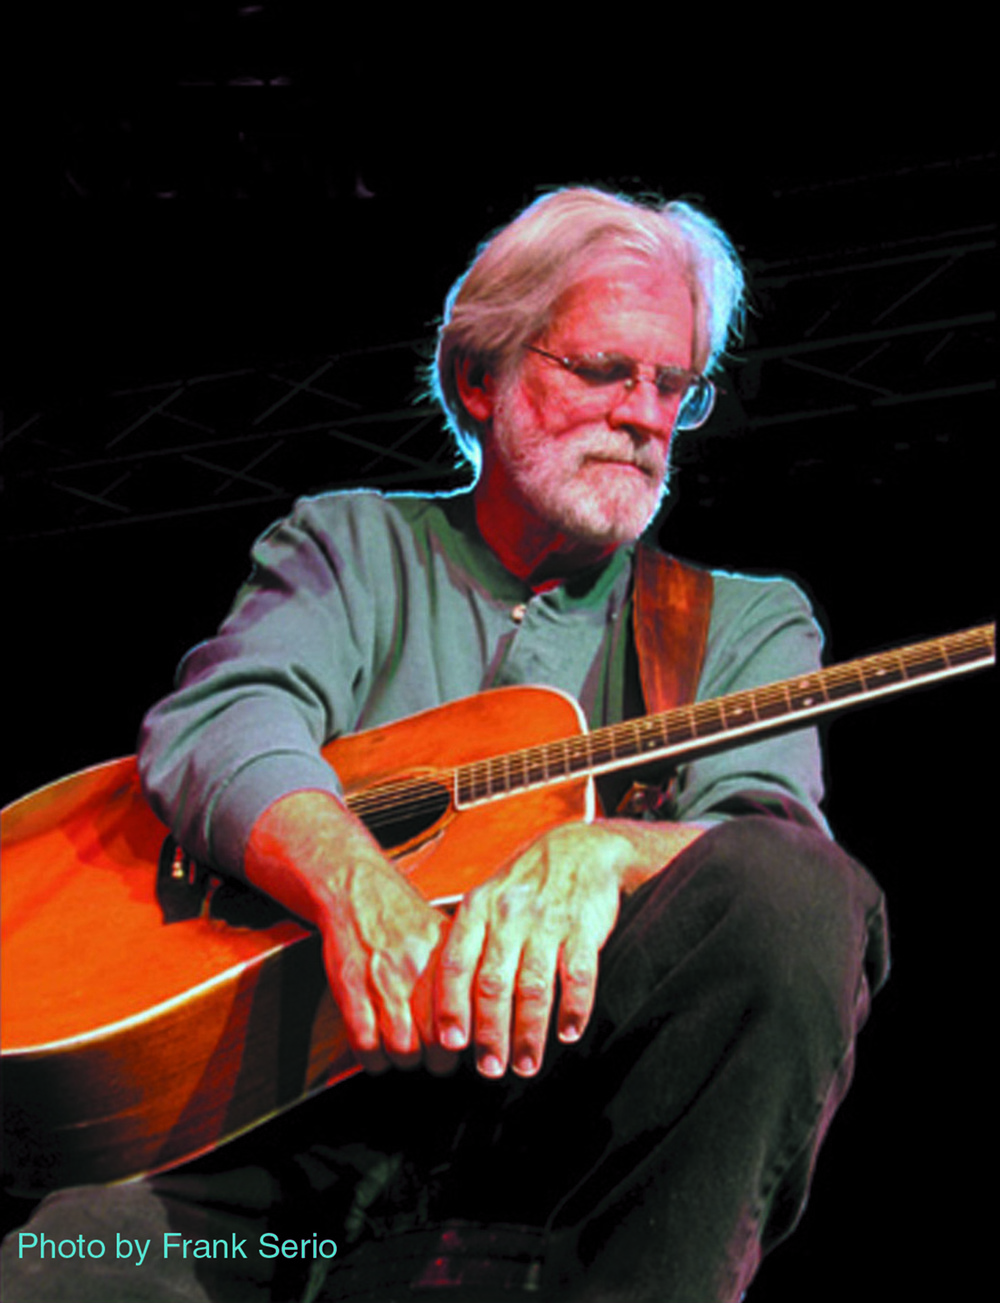 Jack Williams, a genre-spanning folk singer-songwriter and guitarist, will play a show with fellow performers Steve Gillette and Cindy Mangsen on Saturday at The Congregational Church of Huntington in Centerport.